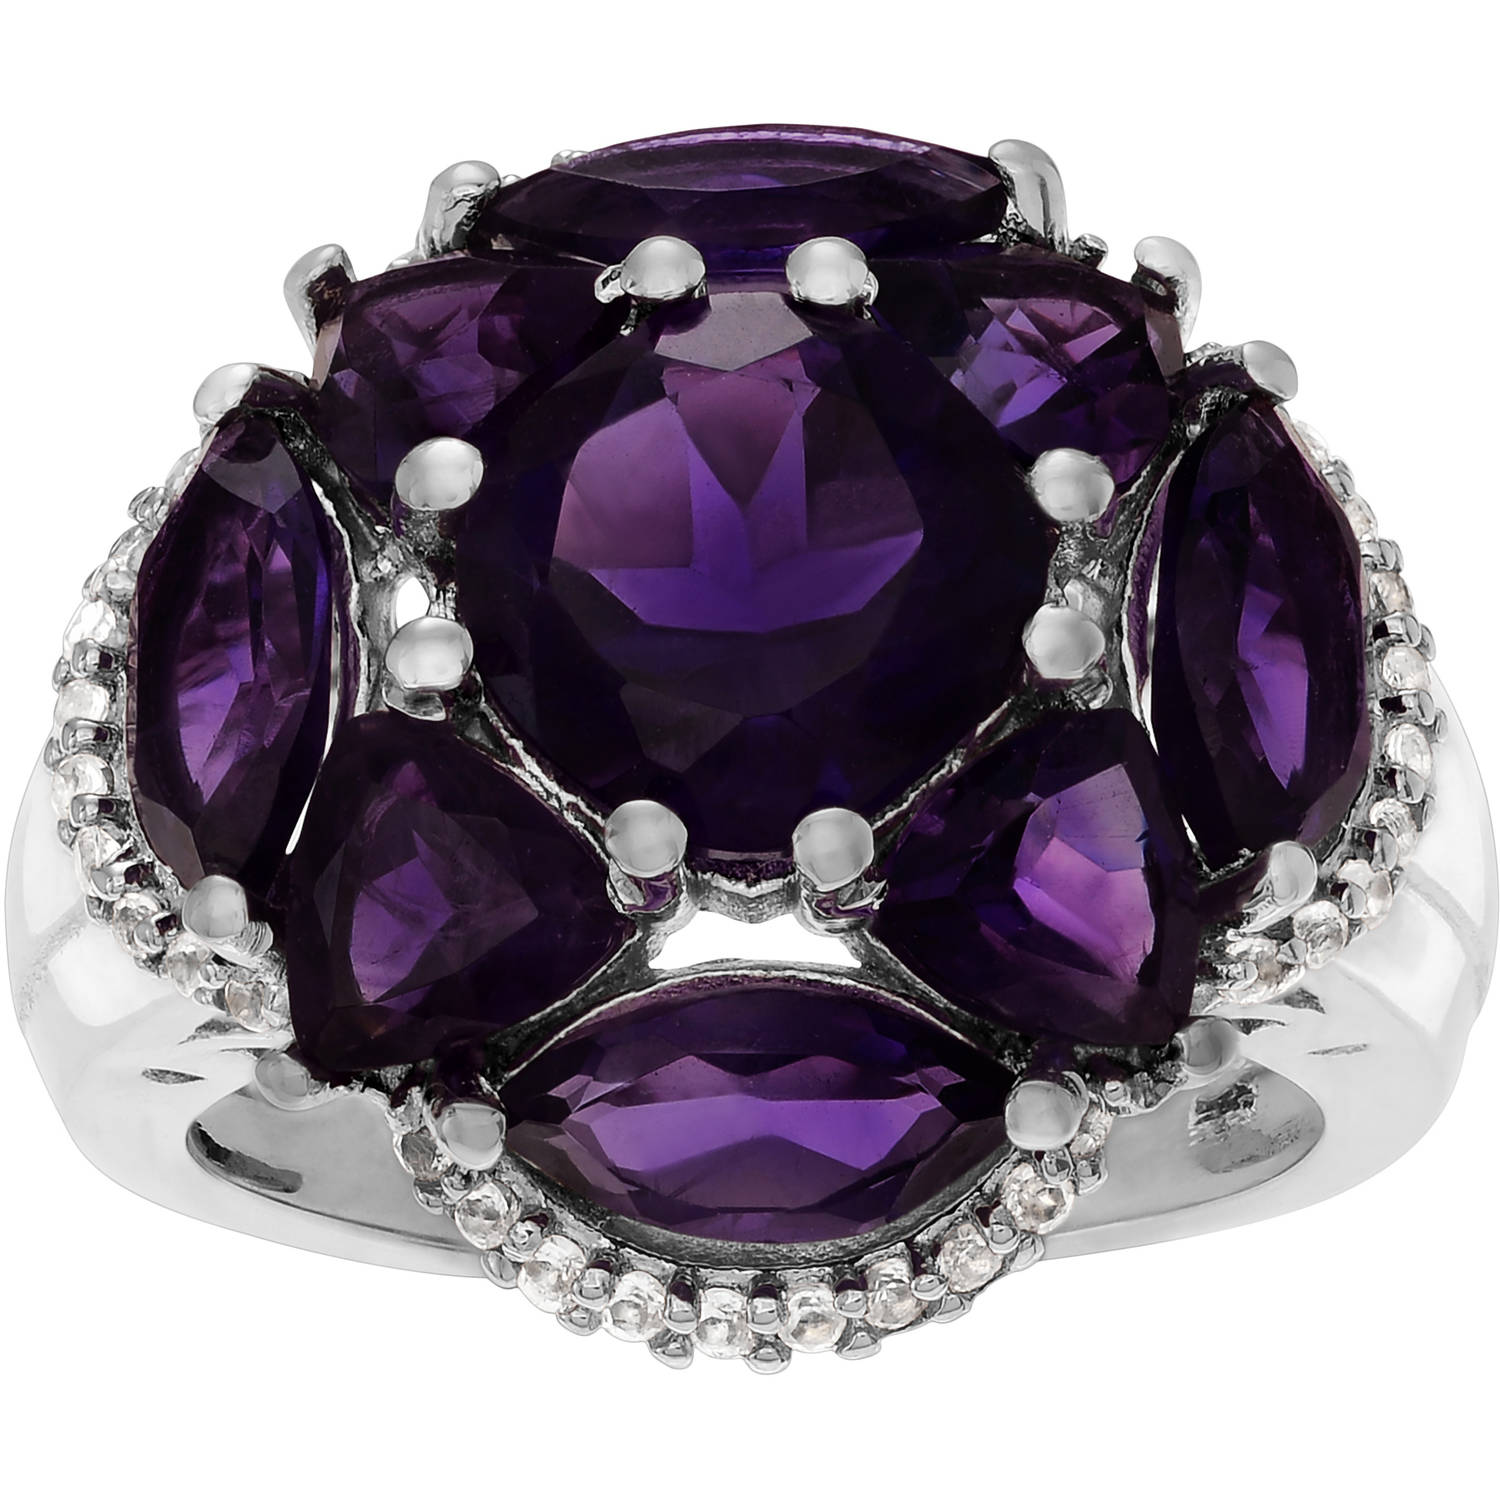 Brinley Co. Women's Amethyst Topaz Sterling Silver Flower Fashion Ring by KNS International